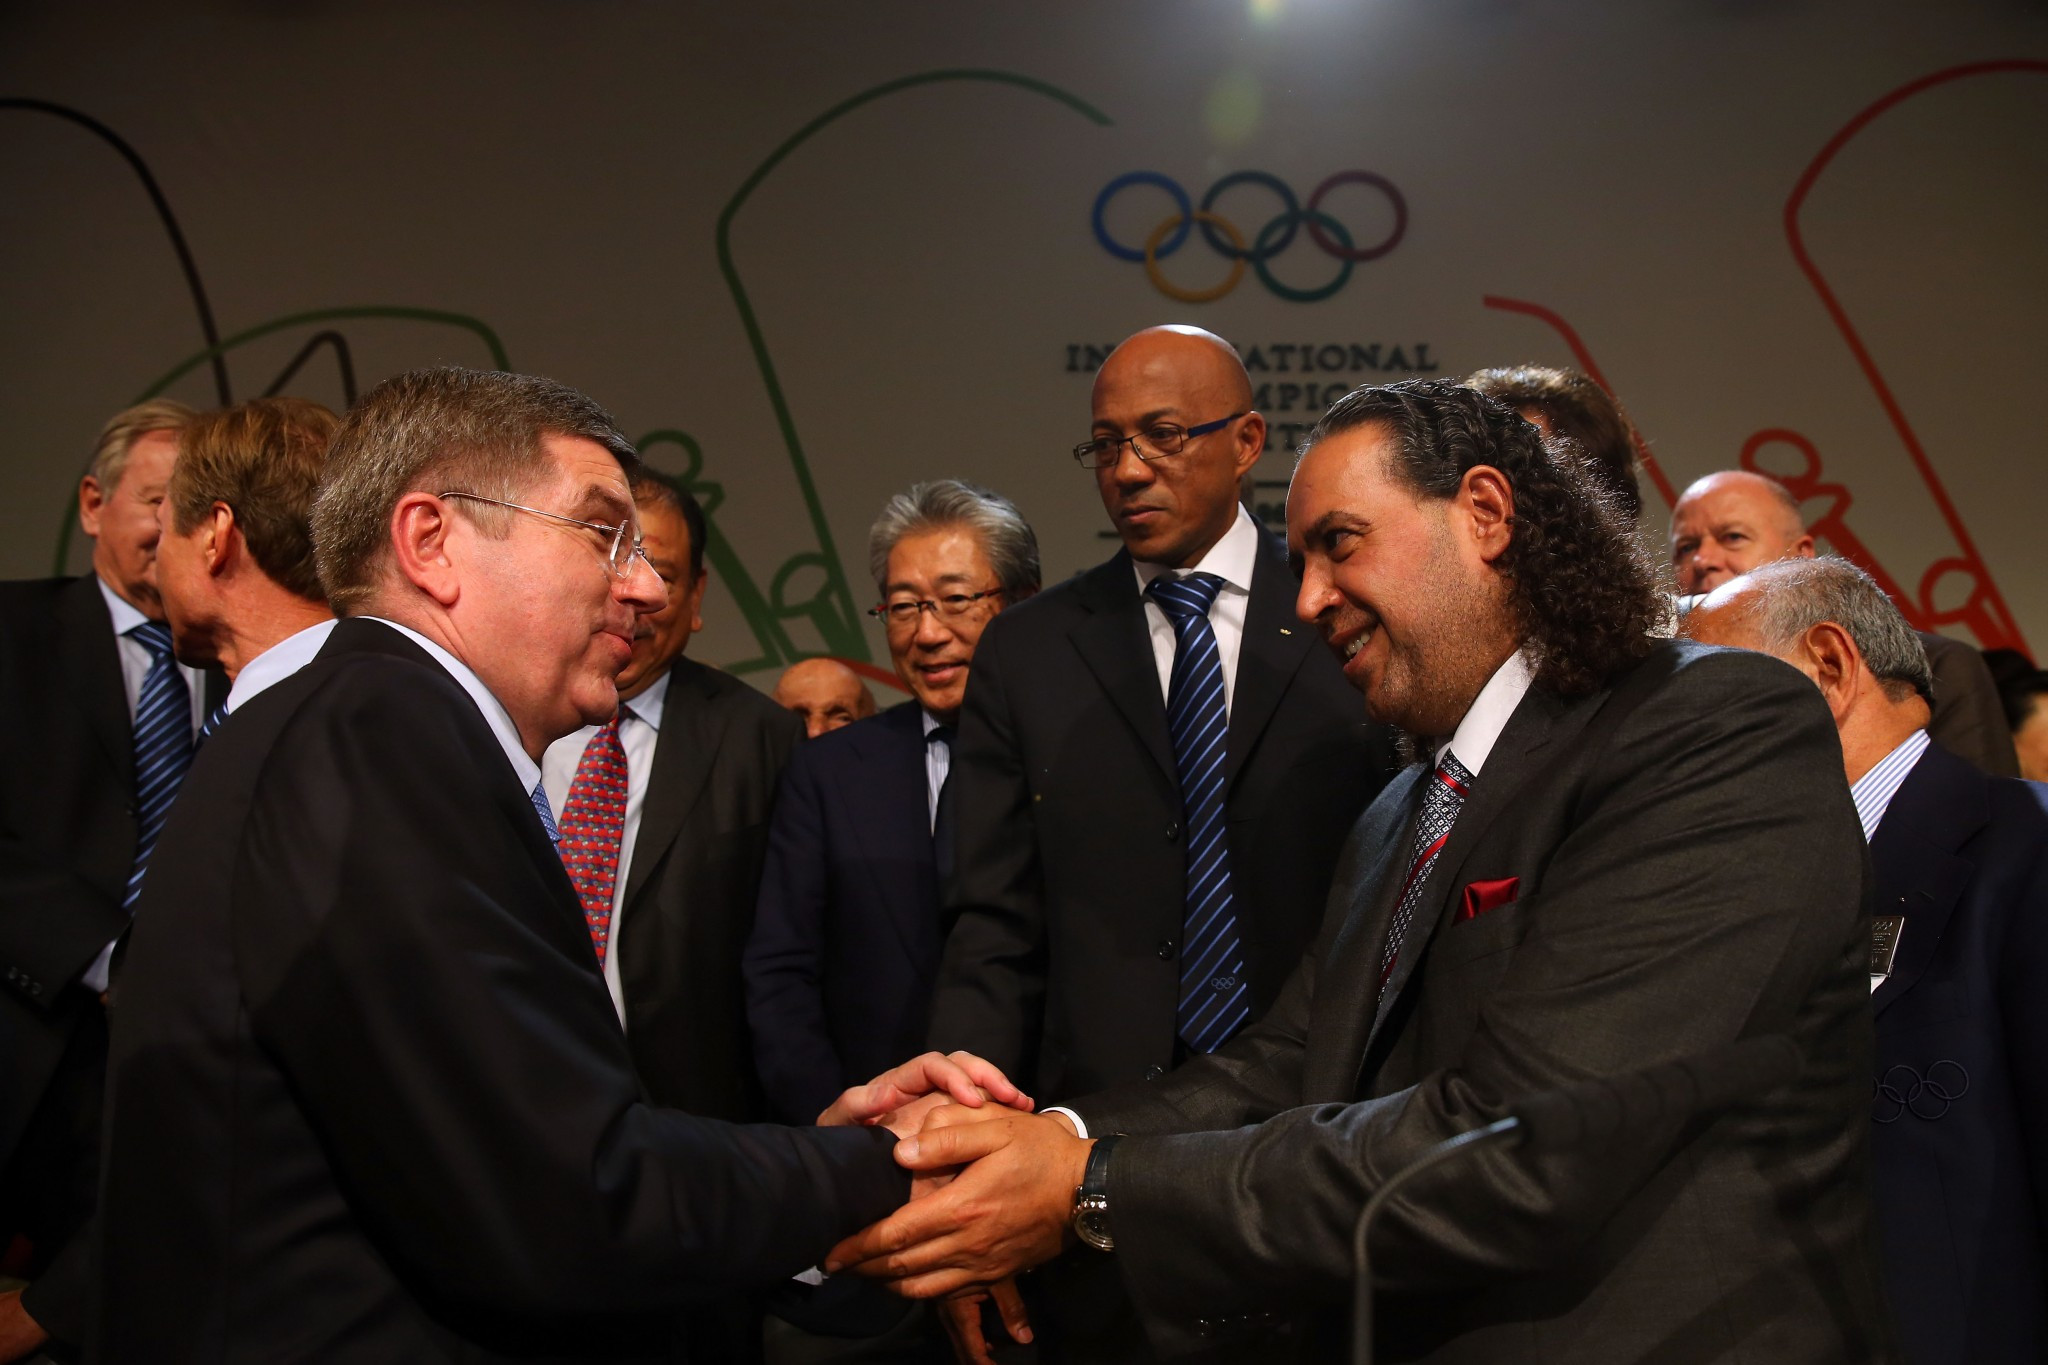 Sheikh Ahmad Al-Fahad Al-Sabah, right, was the key backer of Thomas Bach at the IOC Session in Buenos Aires ©Getty Images